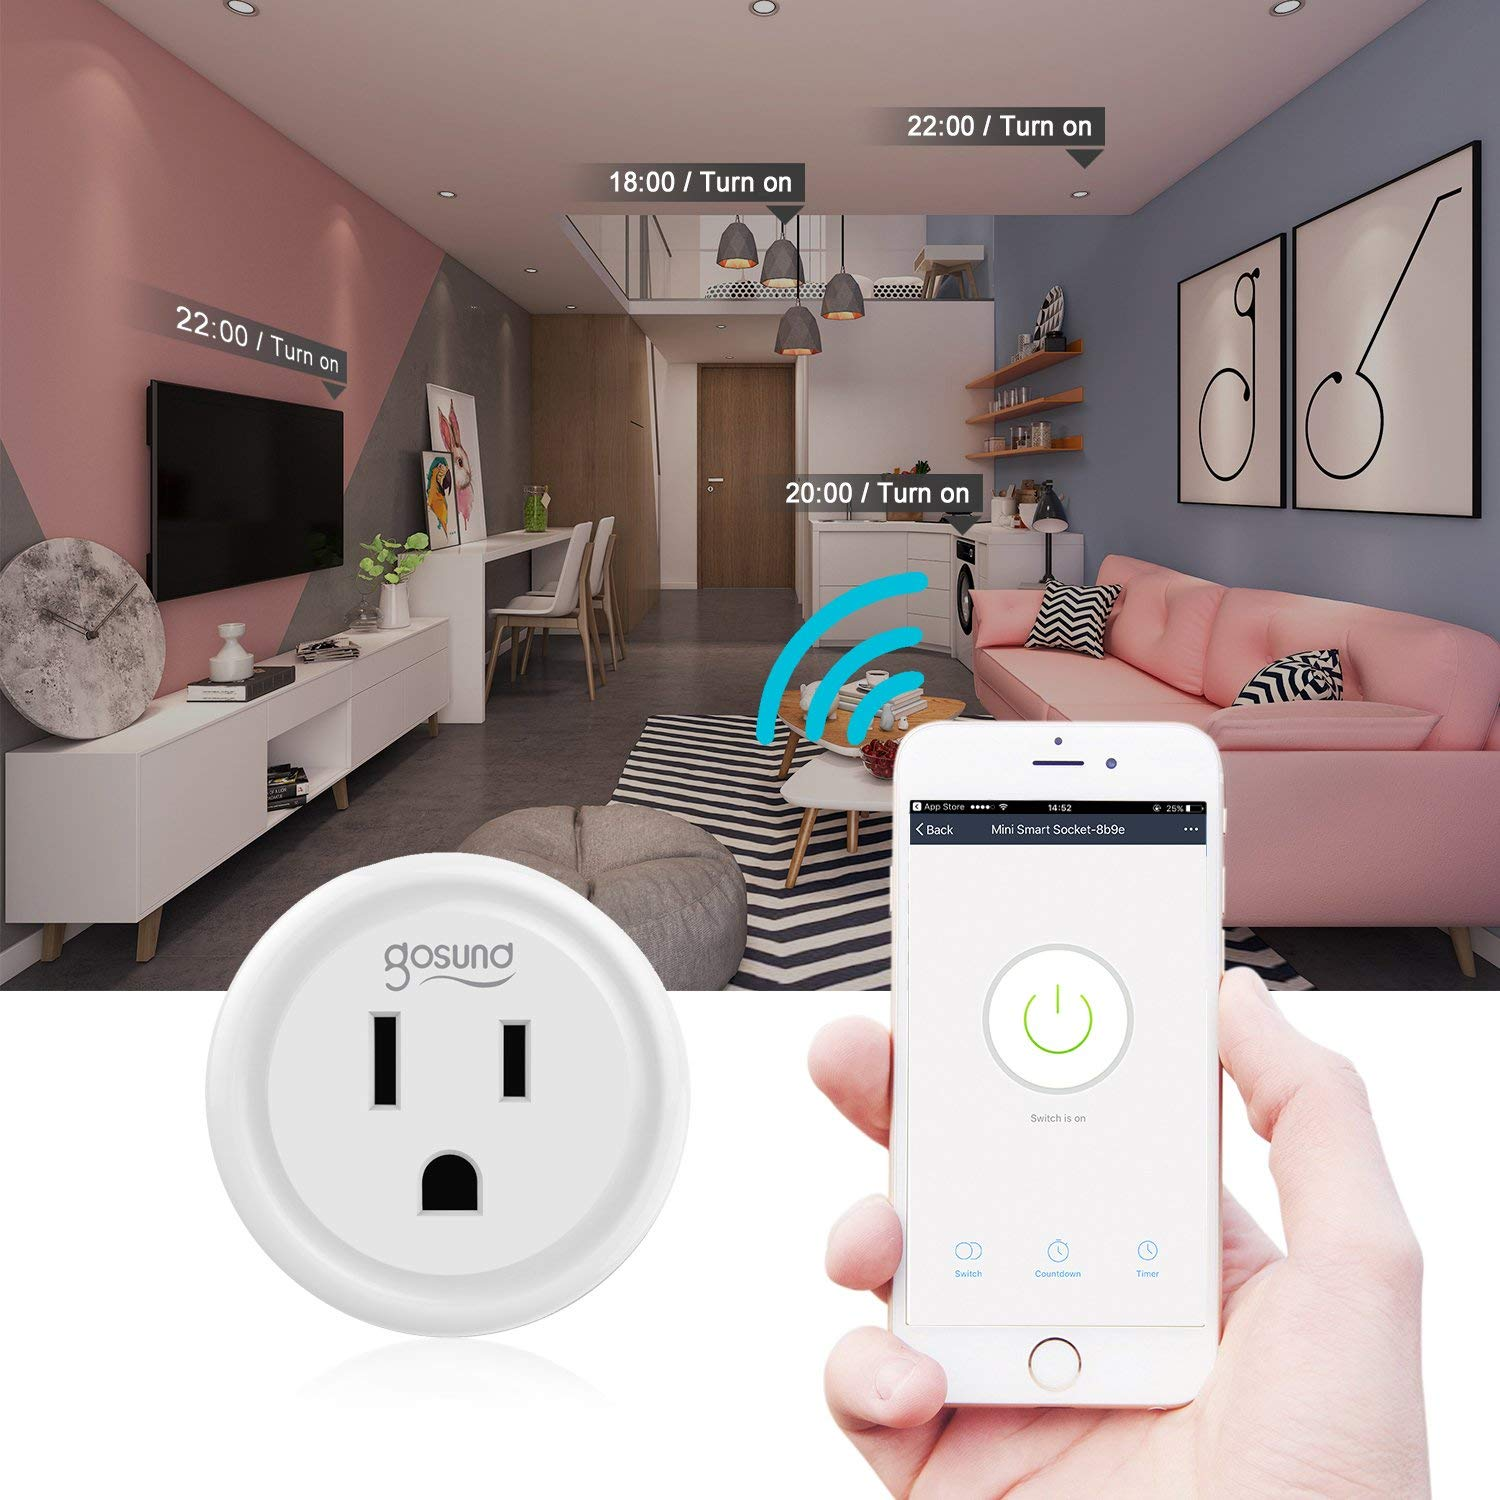 Smart plug, Gosund Mini Wifi Outlet Works w/ Alexa, Google Home IFTTT, No Hub Required, Remote Control Your Home Appliances from Anywhere, ETL Certified,Supports 2.4GHz Network(4 Pieces) (Renewed)